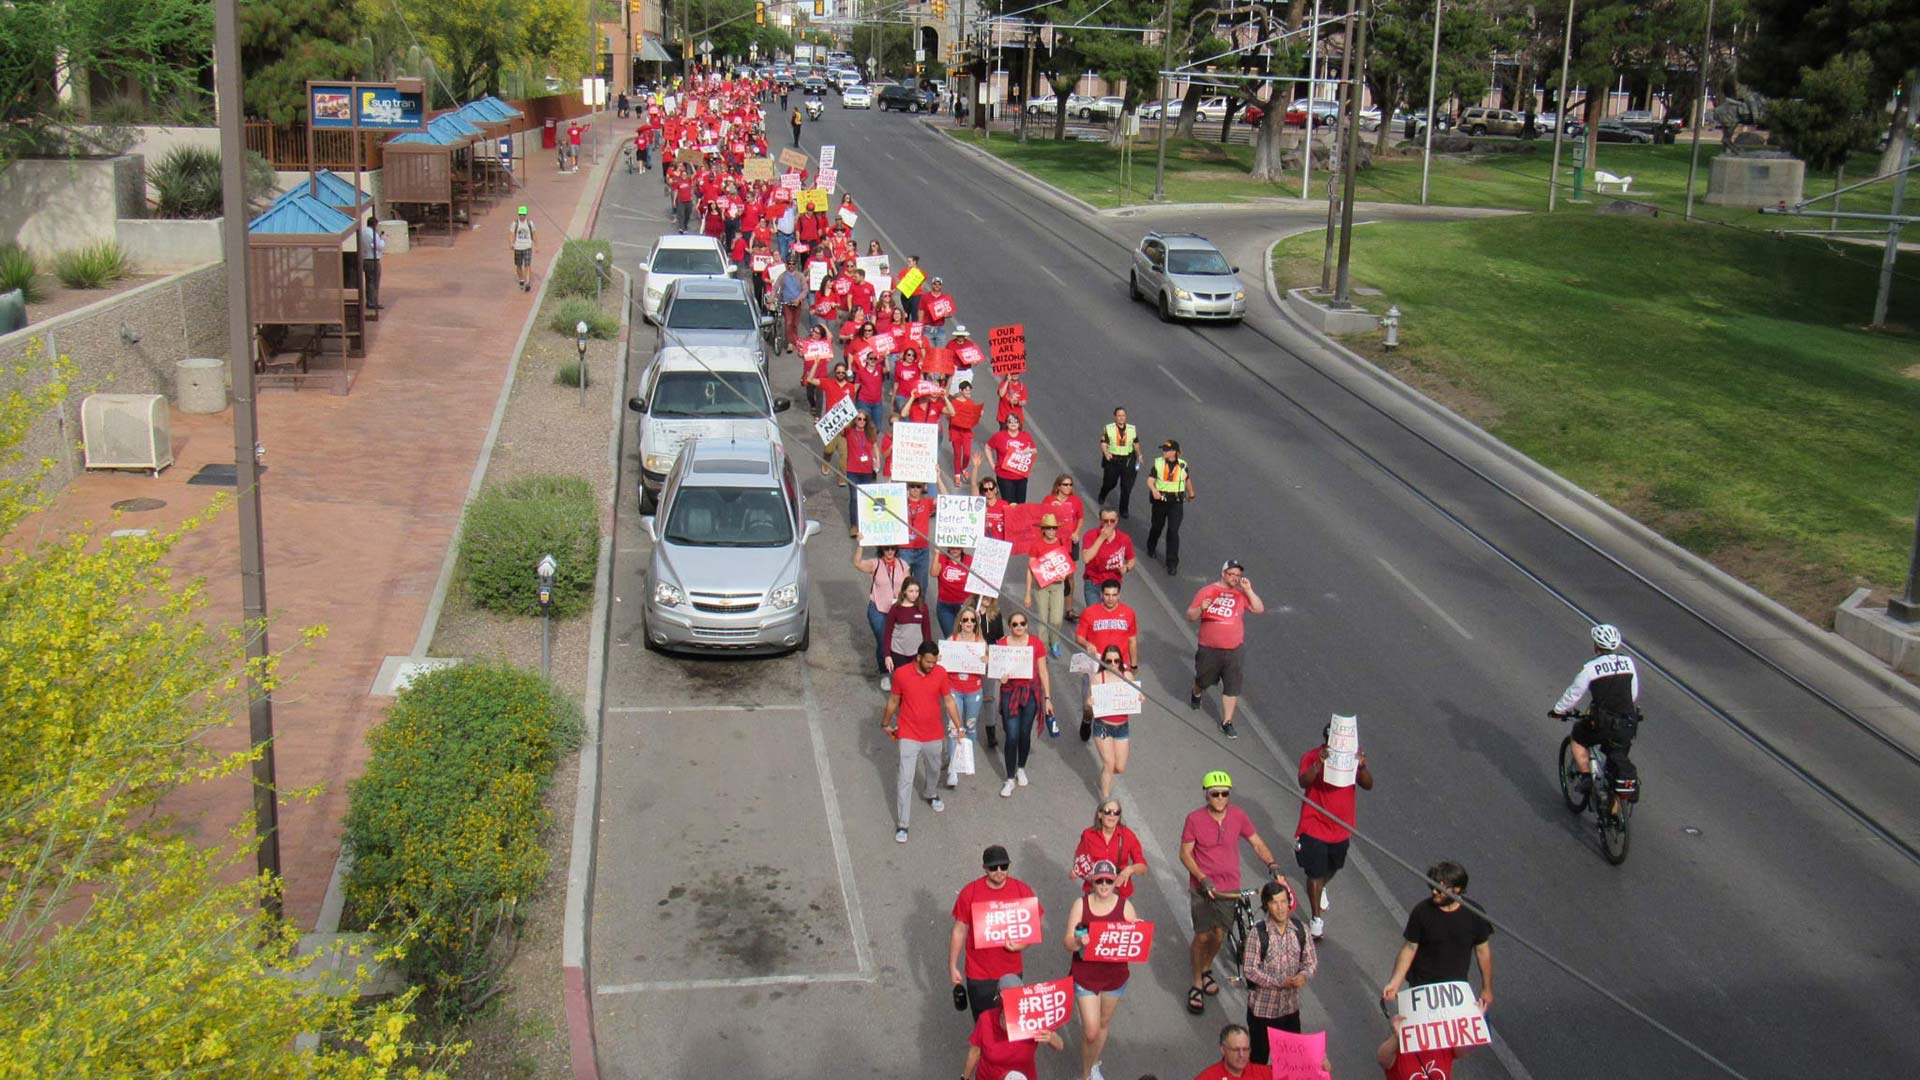 Hundreds of teachers and families march down Congress street chanting for better teacher pay and funding for education.